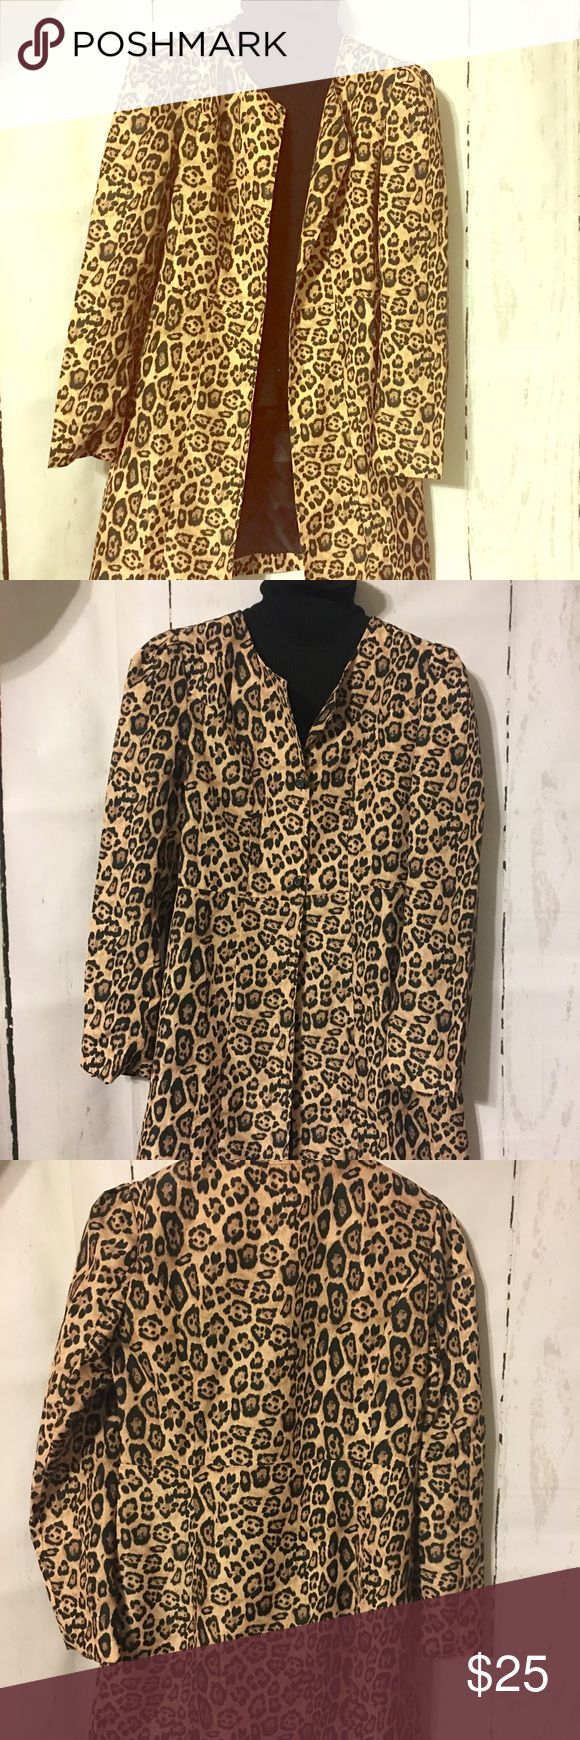 Cheetah Print Topper Cheetah Print Topper. No tag but it feels like polyester nylon, almost like a light raincoat so possibly water repellent. Sized XL but runs small so better fit for a 10-12. Perfect over a black body Con dress (see my closet) or on top of jeans and t-shirt. Jackets & Coats Trench Coats